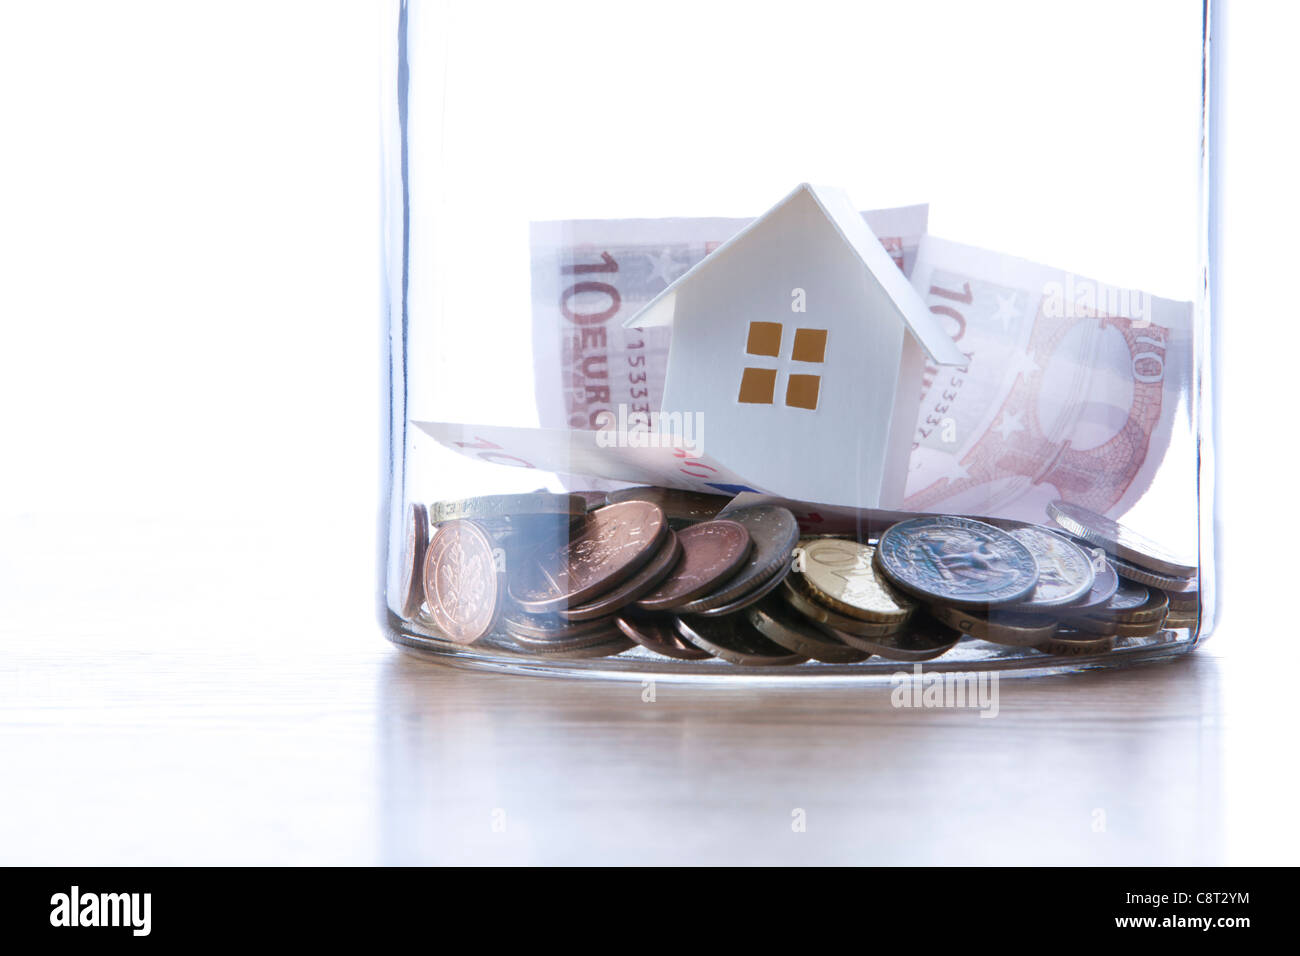 Close up of European union currency and model home in glass jar - Stock Image